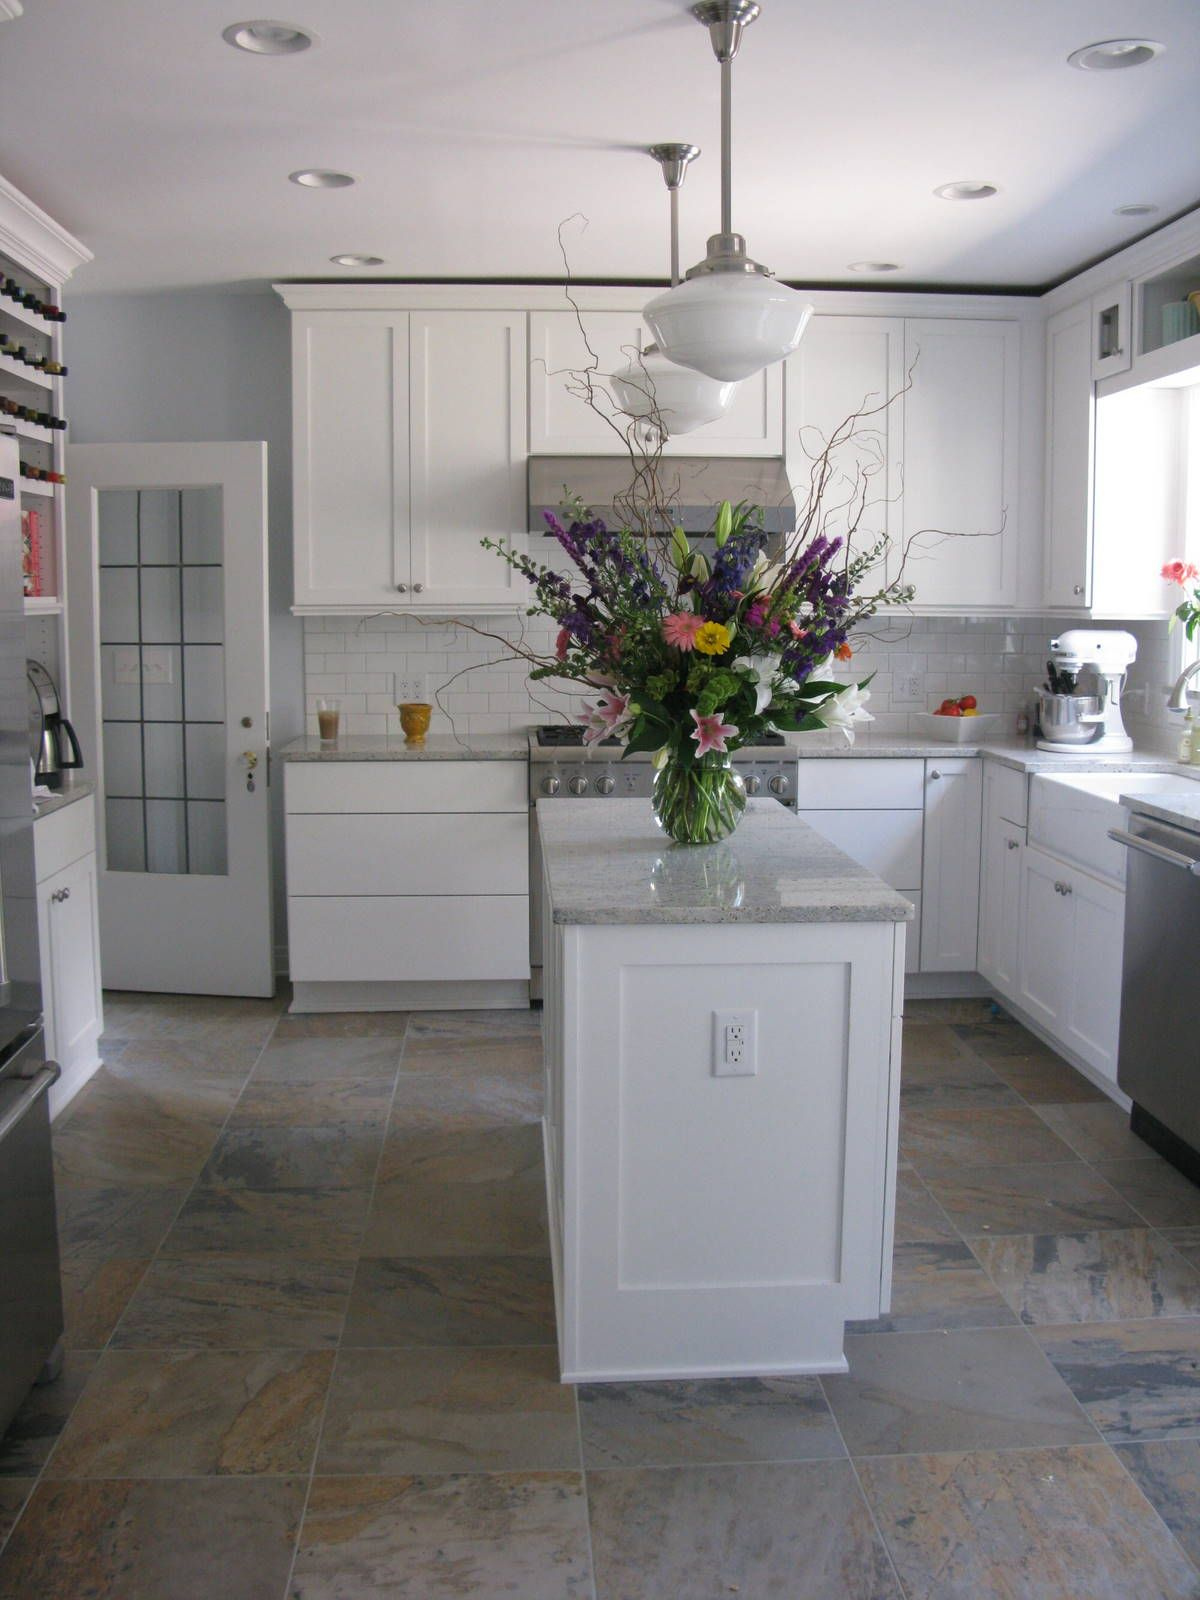 Icicle By Sherwin Williams For Master Bathroom Cute Kitchen Too